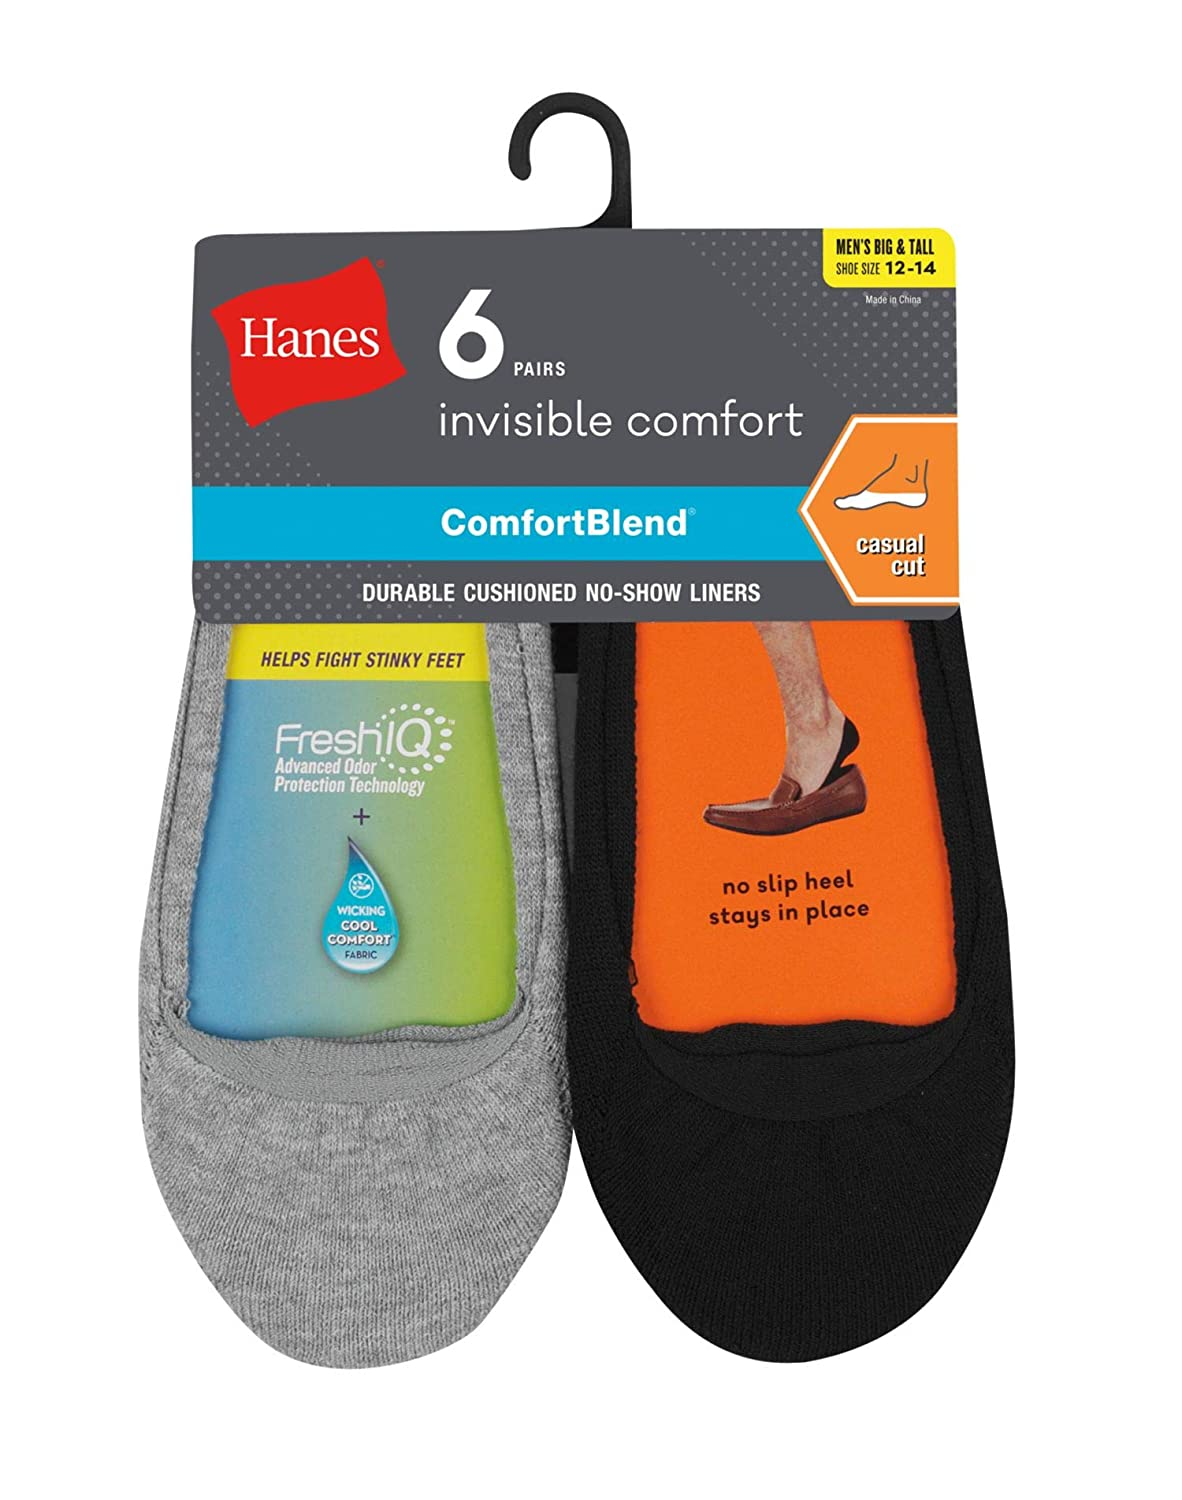 Hanes Men's Invisible Comfort No-Show Liners 6 Pack IC16